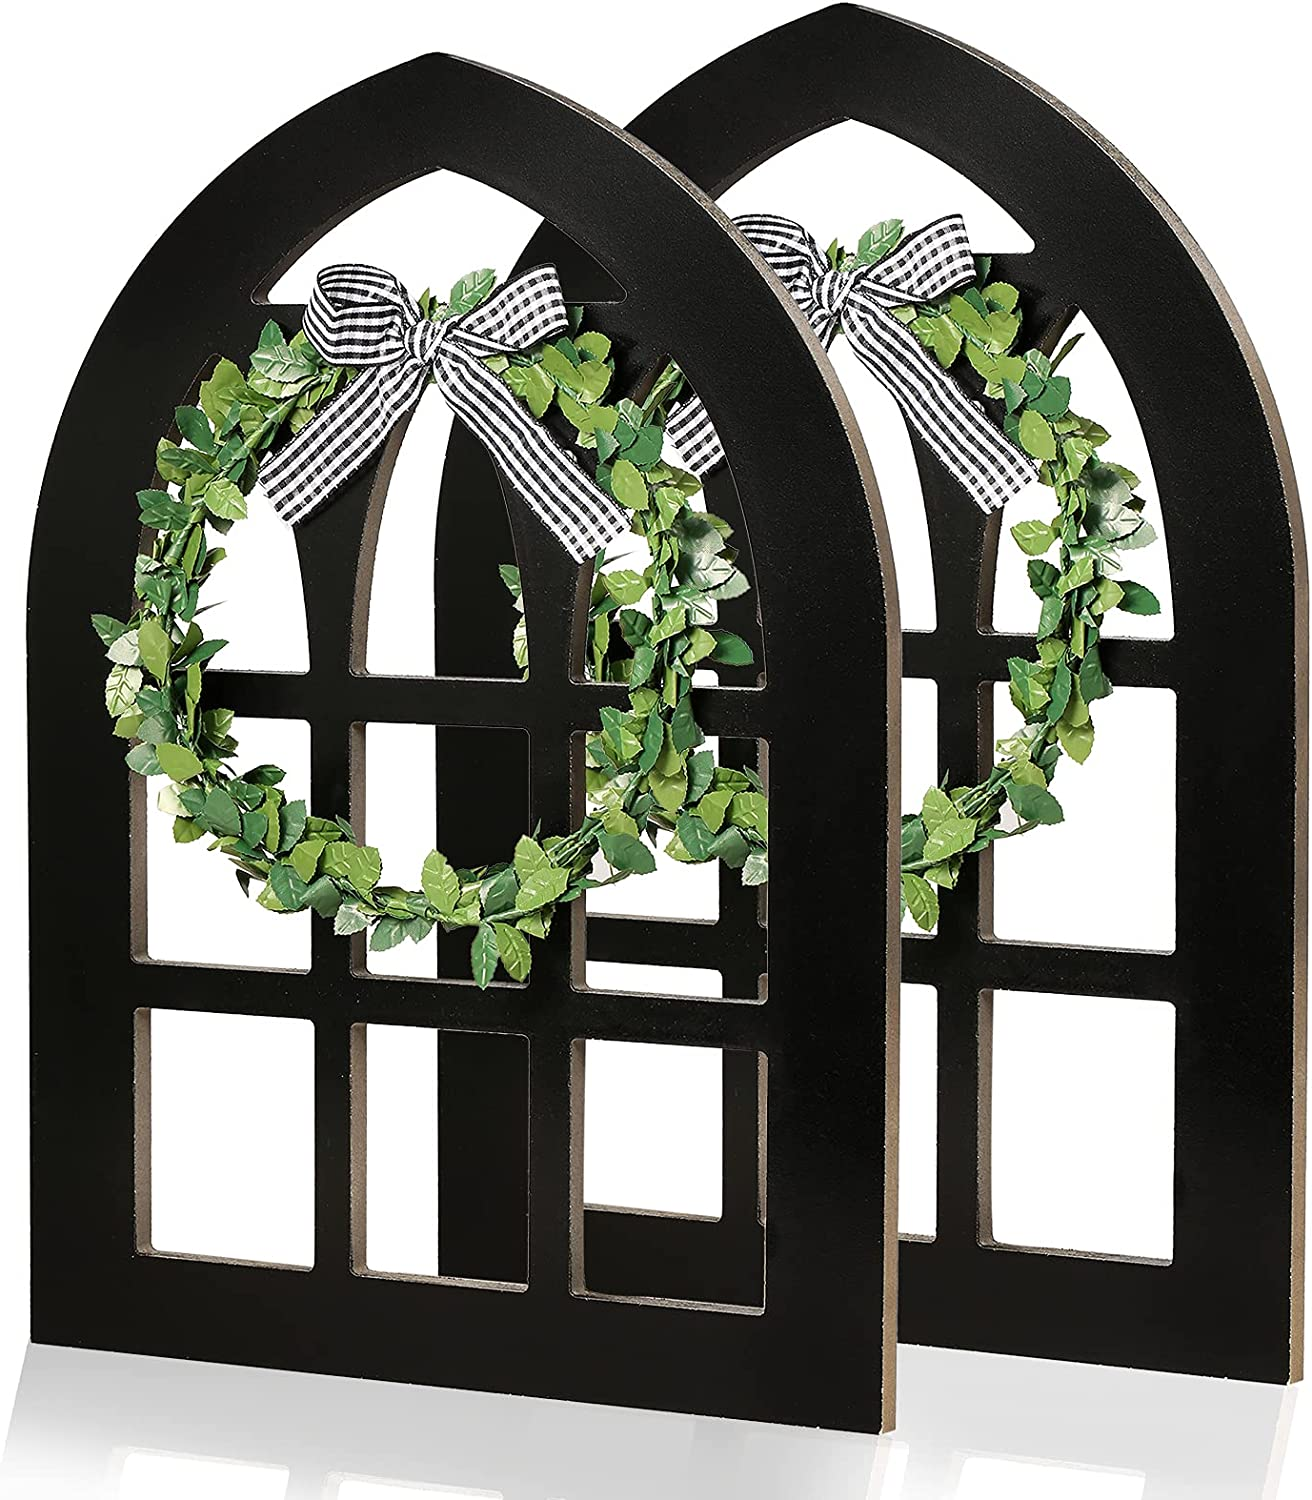 2 Pack Wooden Cathedral Arch Window Frame, Rustic Farmhouse Wall Decor, Vintage Wall Hanging Art Decorations with Bow and Green Wreath…(Black)